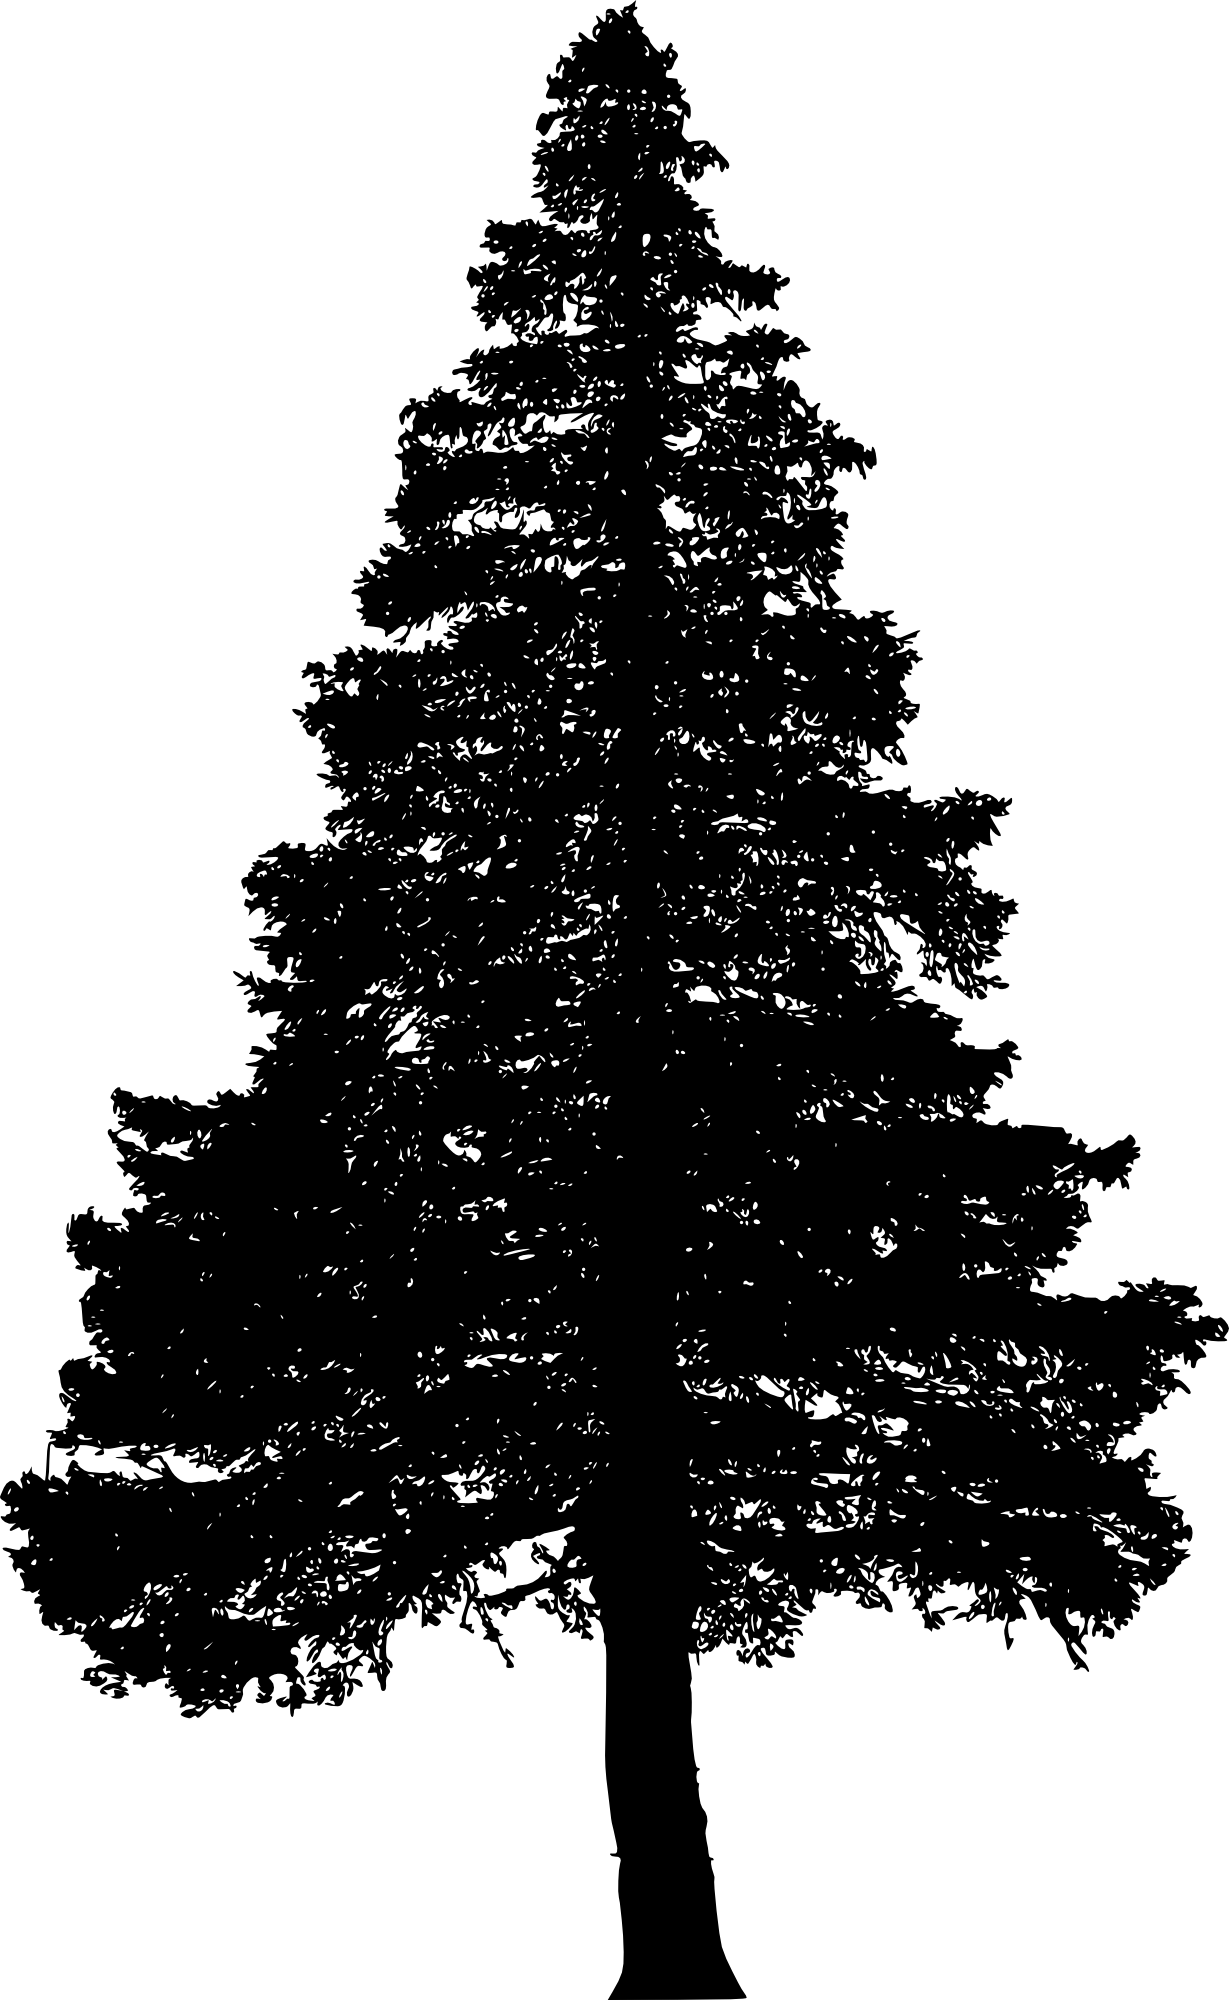 tree silhouette transparent. Pine forest png clip art freeuse download